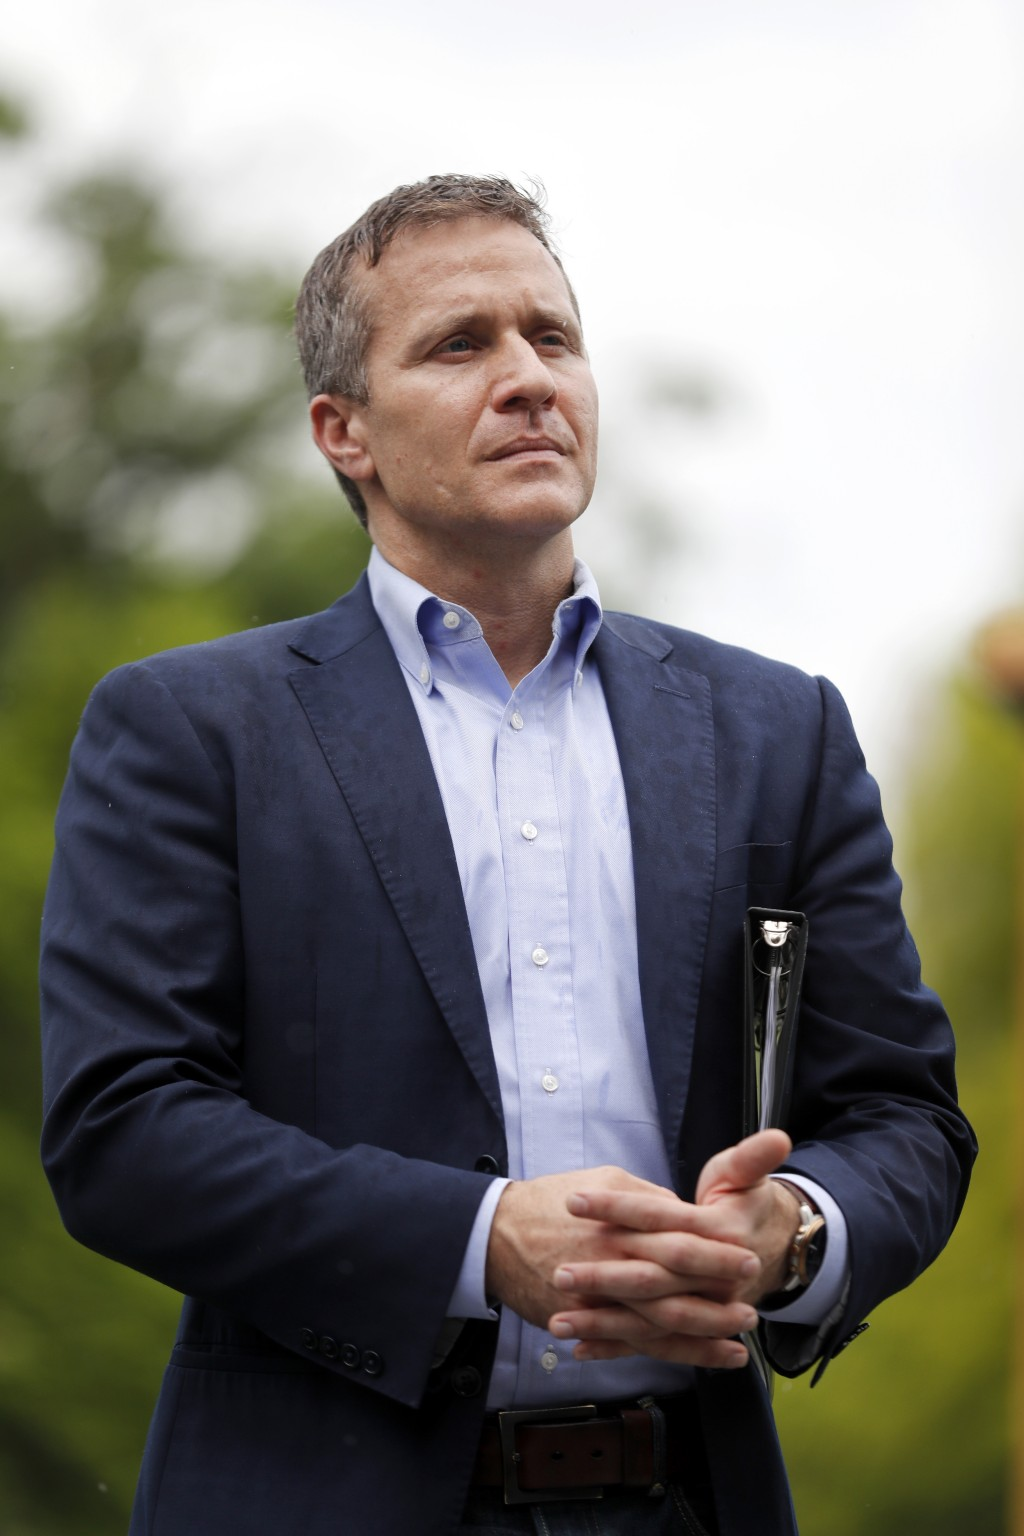 Missouri Gov. Eric Greitens stands off to the side before stepping up to the podium to deliver remarks to a small group of supporters near the capitol